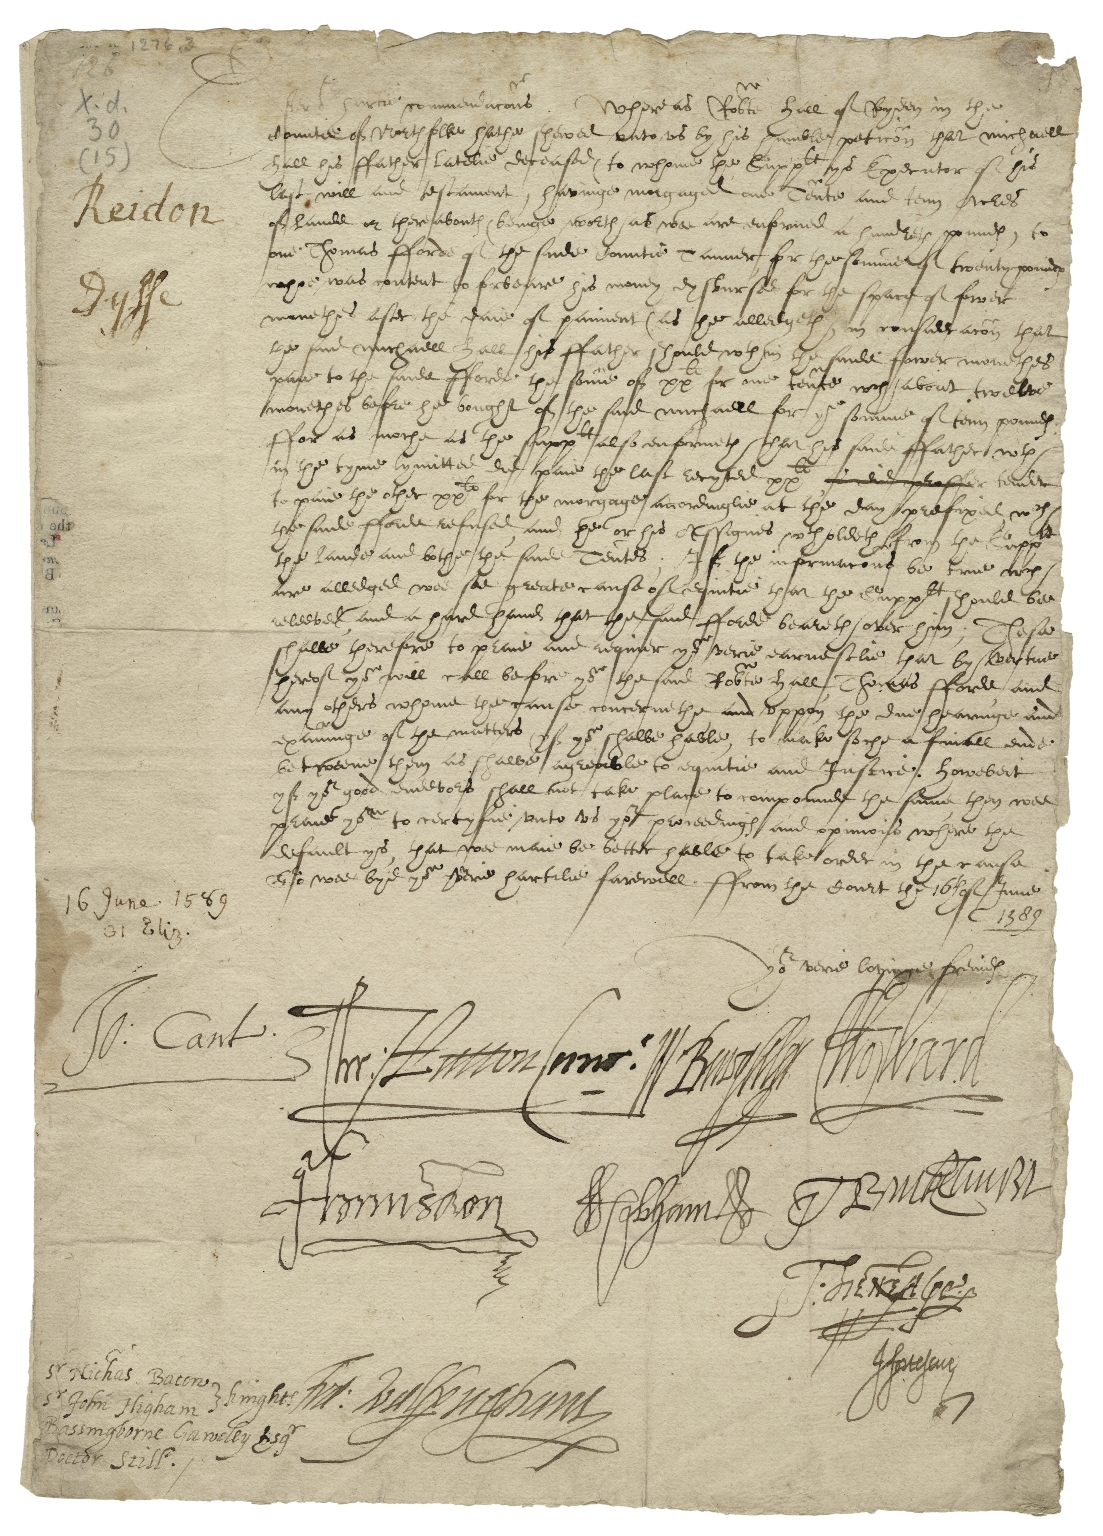 Letter signed from the Privy Council, the Court, to Sir Nicholas Bacon, Sir John Higham, Bassingbourne Gawdy, and Dr. Still